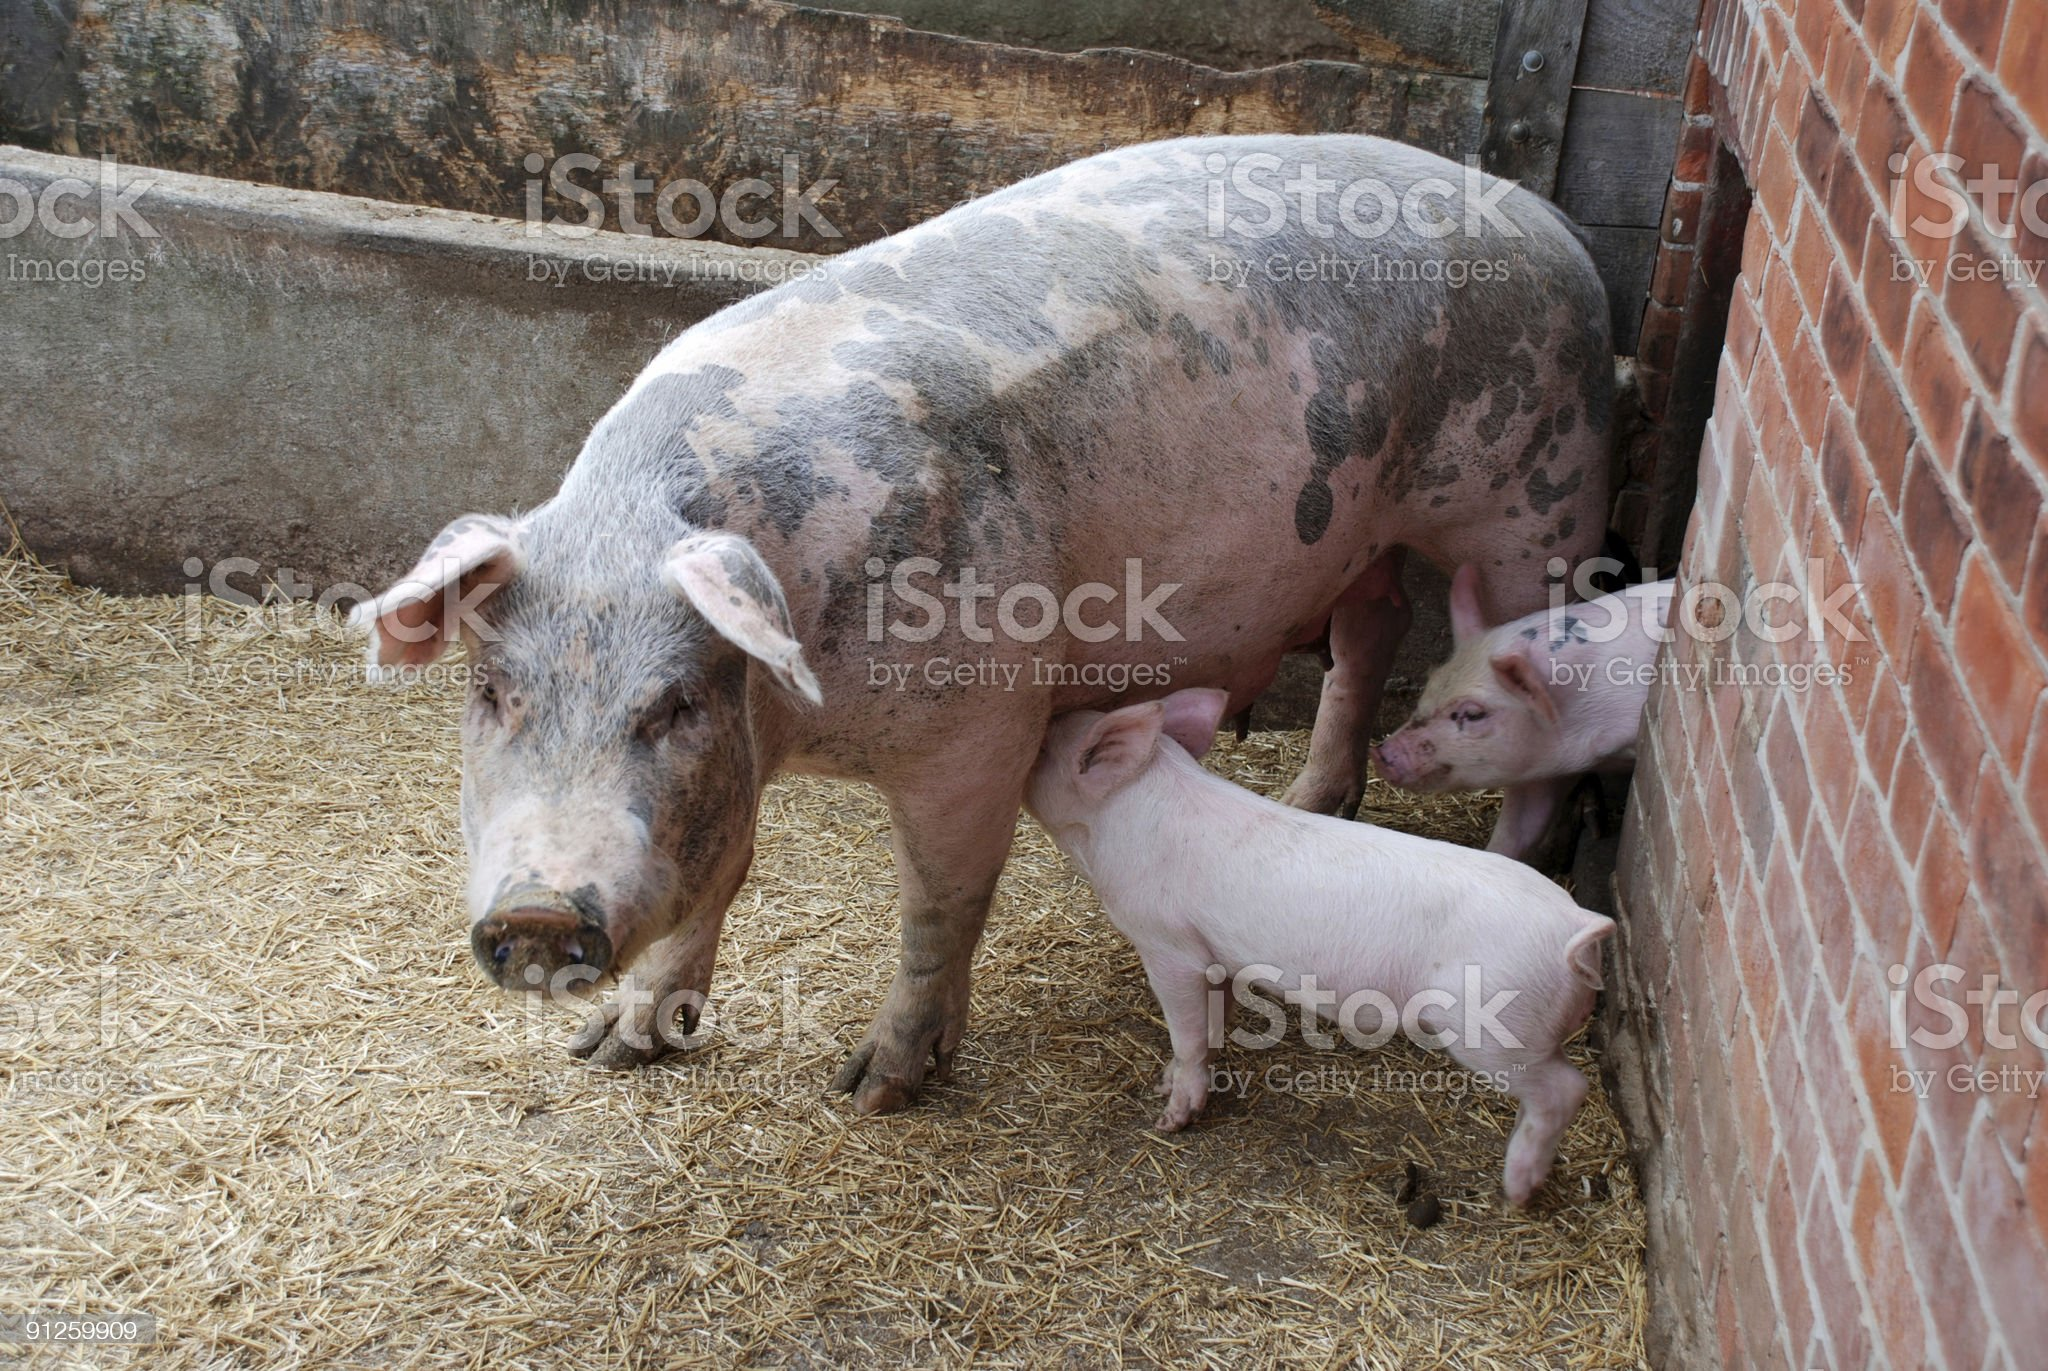 Piglets with mother pig royalty-free stock photo